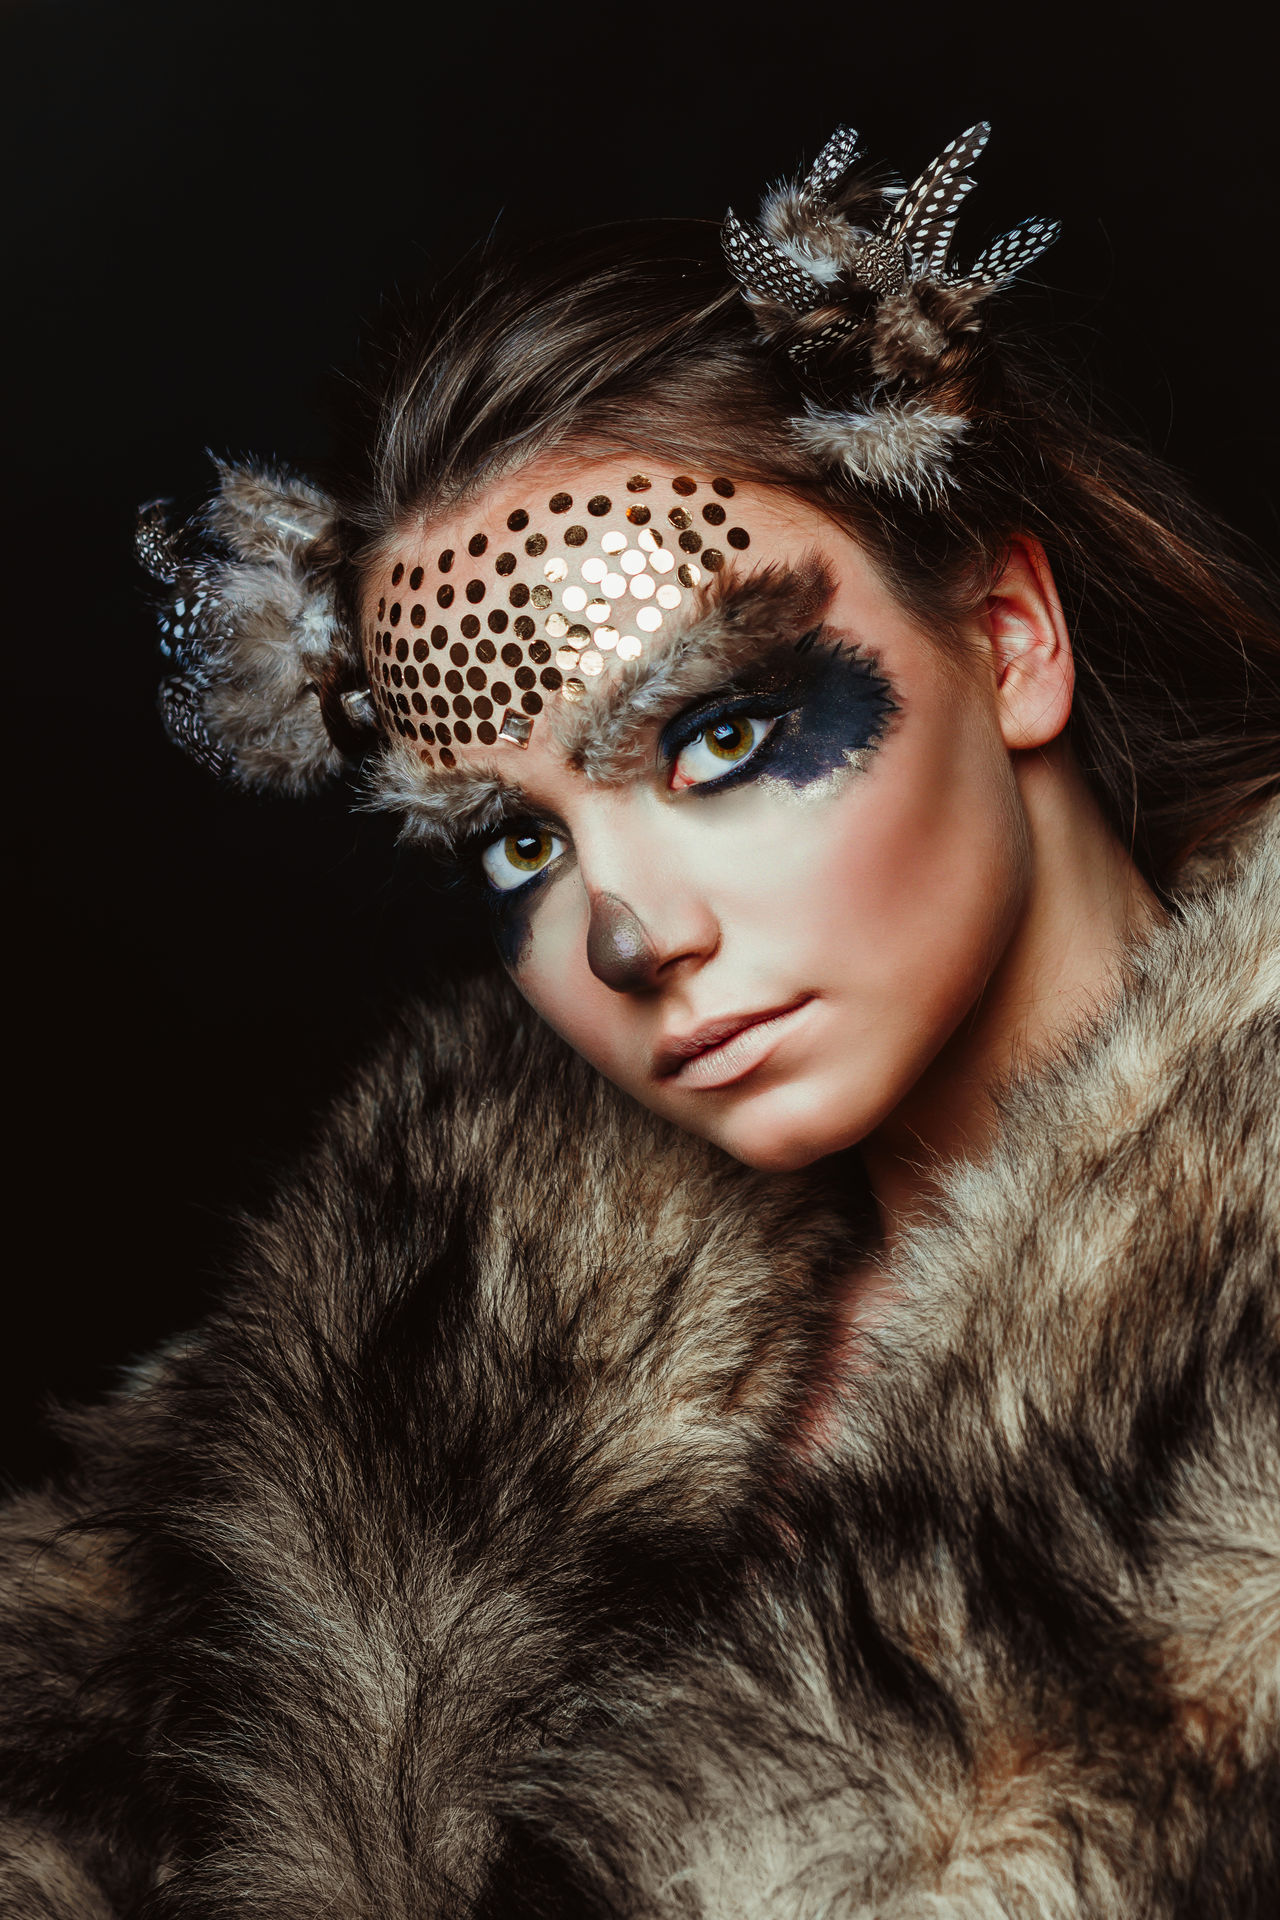 Art Art Photography Beauty Cool Attitude Cover Editorial  Editorial Fashion Elégance Fantasy Fantasy Dreaming Fantasy Edits Fantasy Photography Fashion Fashion Model Glamour Hairstyle Human Face Make-up Makeup Owl Portrait Stage Make-up Studio Shot